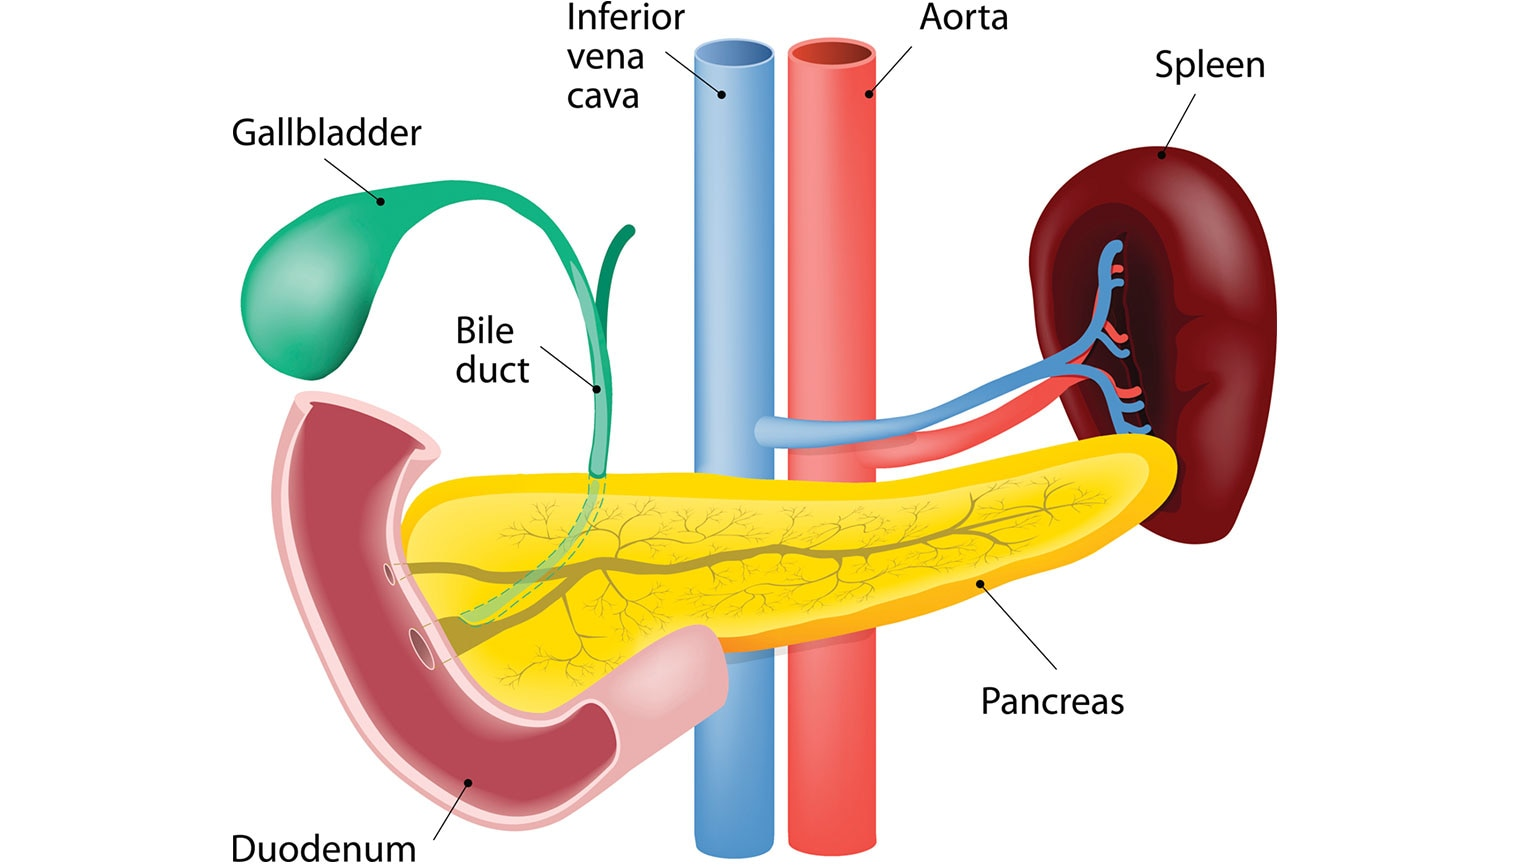 Digestive System Anatomy Of The Pancreas Liver And The